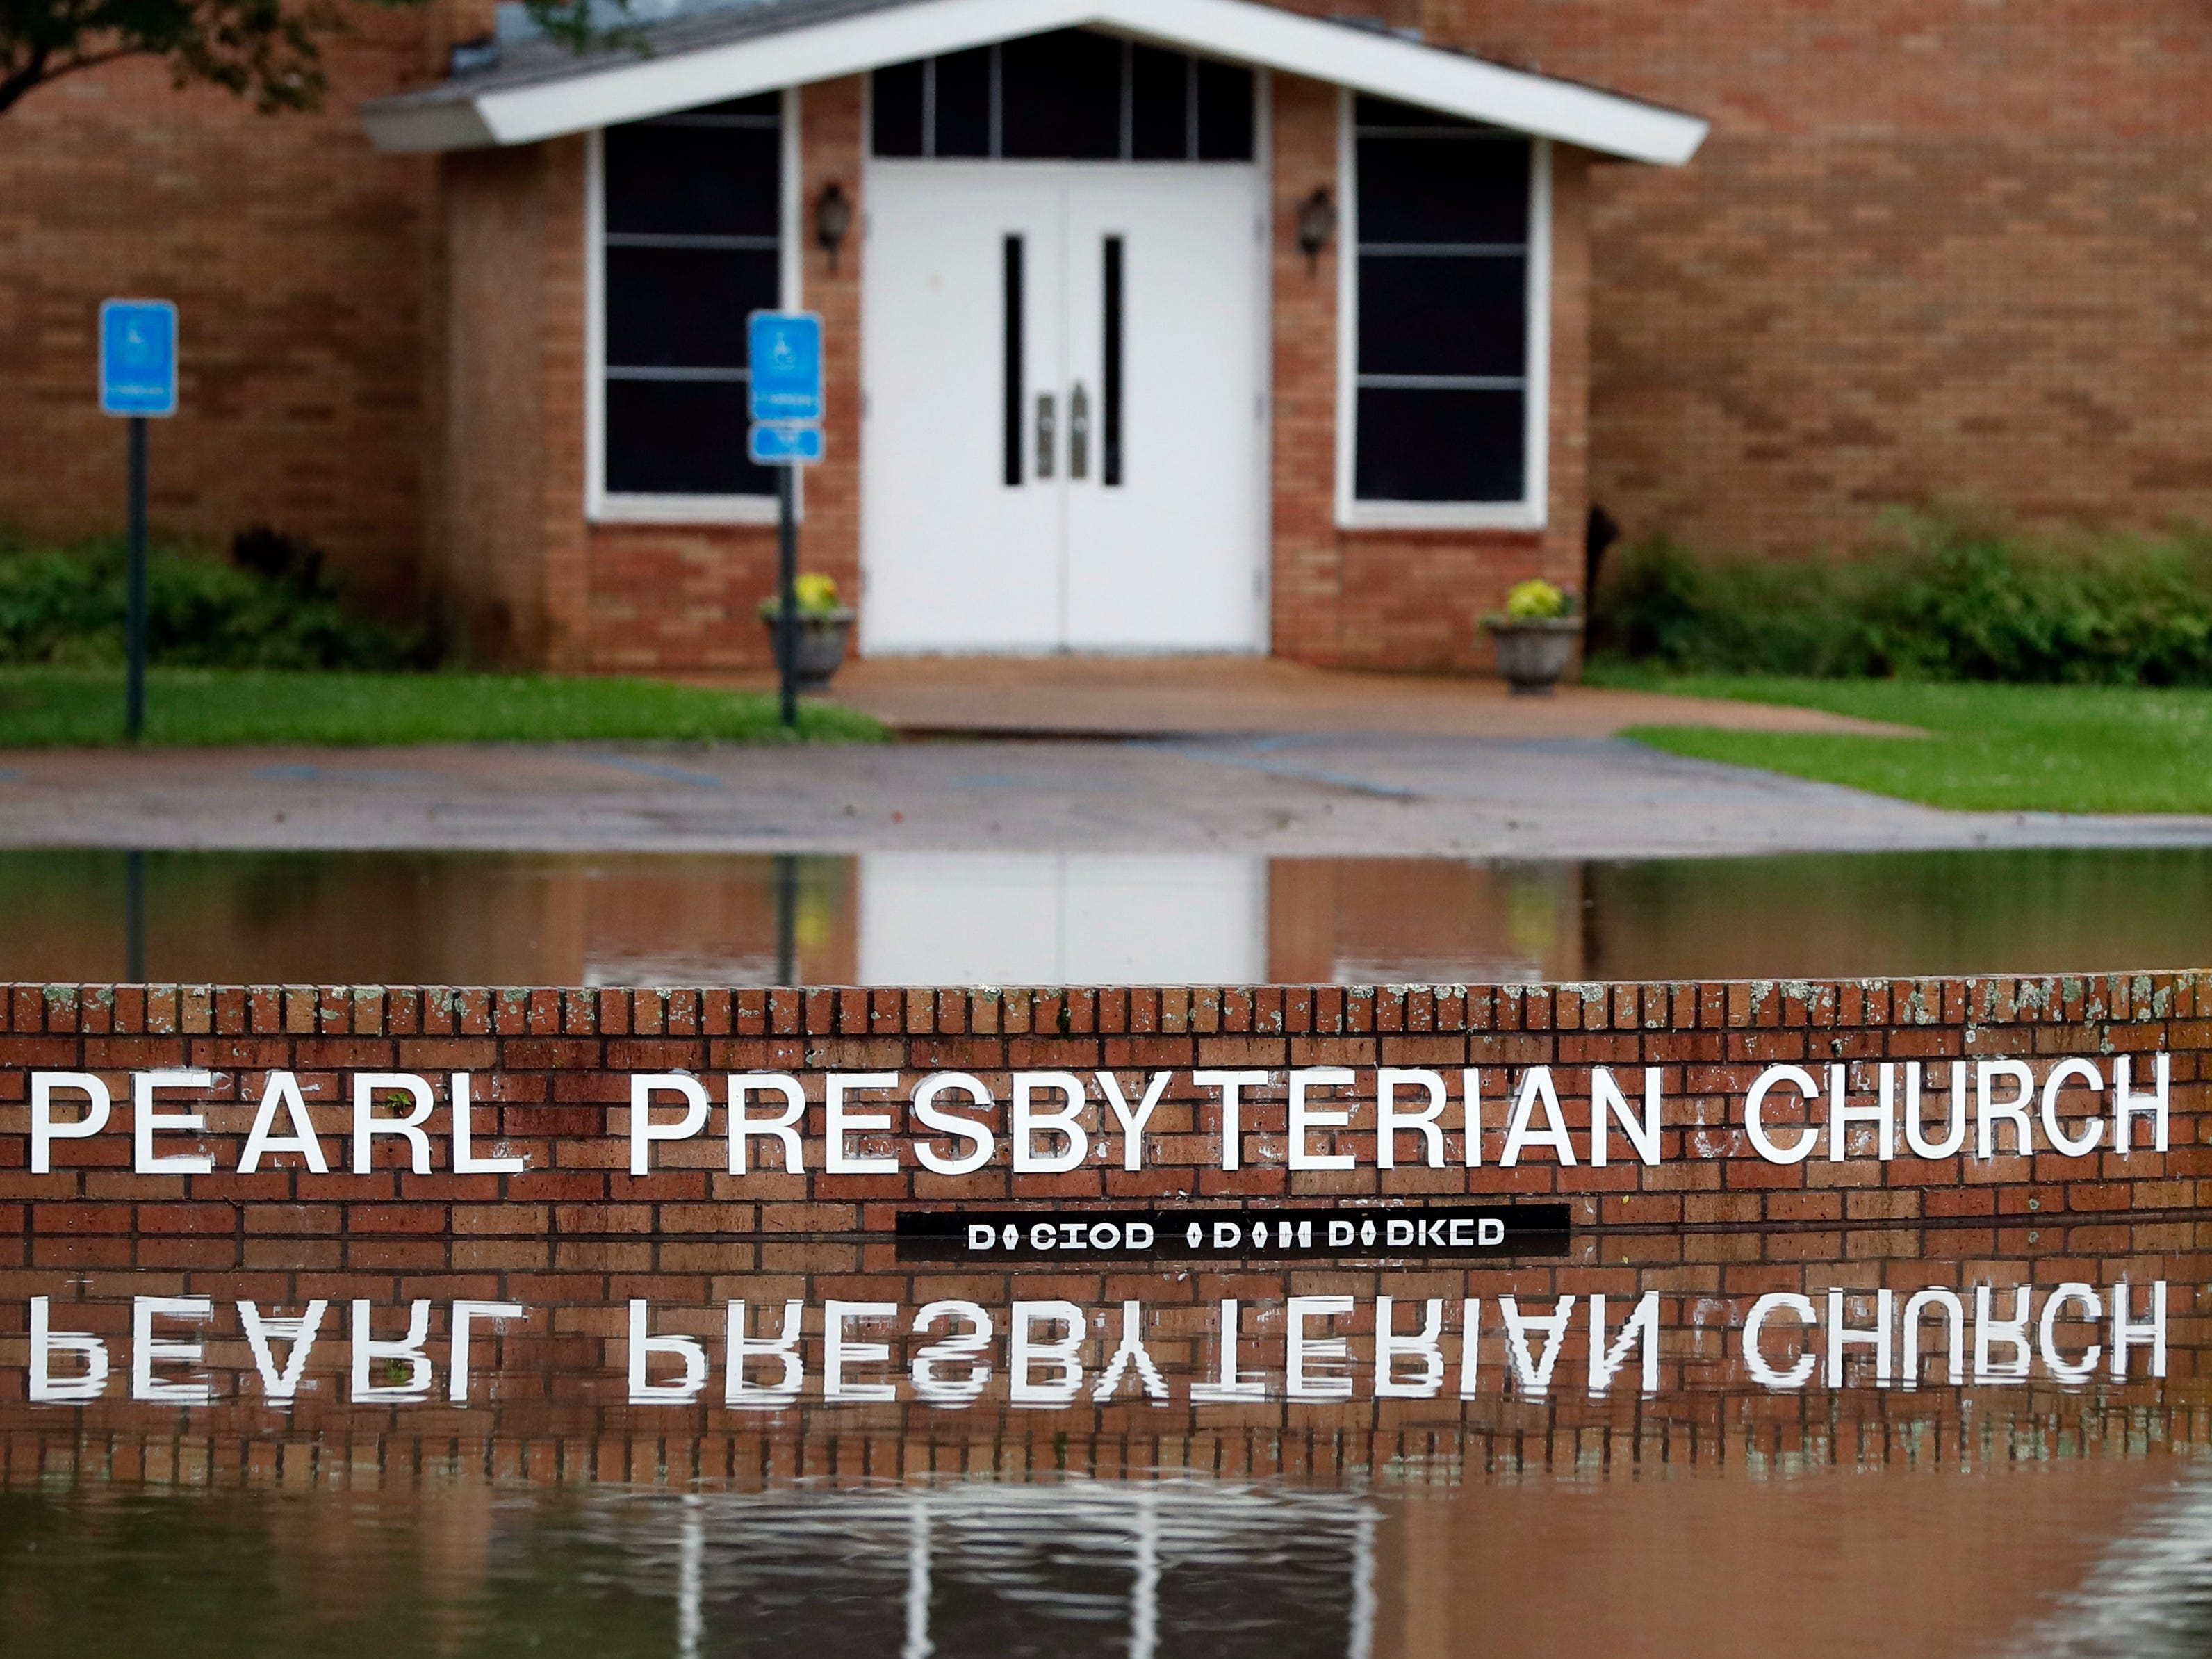 The Pearl Presbyterian Church's sign is reflected in floodwaters in Pearl, Miss., on Thursday, May 9, 2019. There is no pond on the property and the flash flooding filled up the parking lot as it surrounded the church.